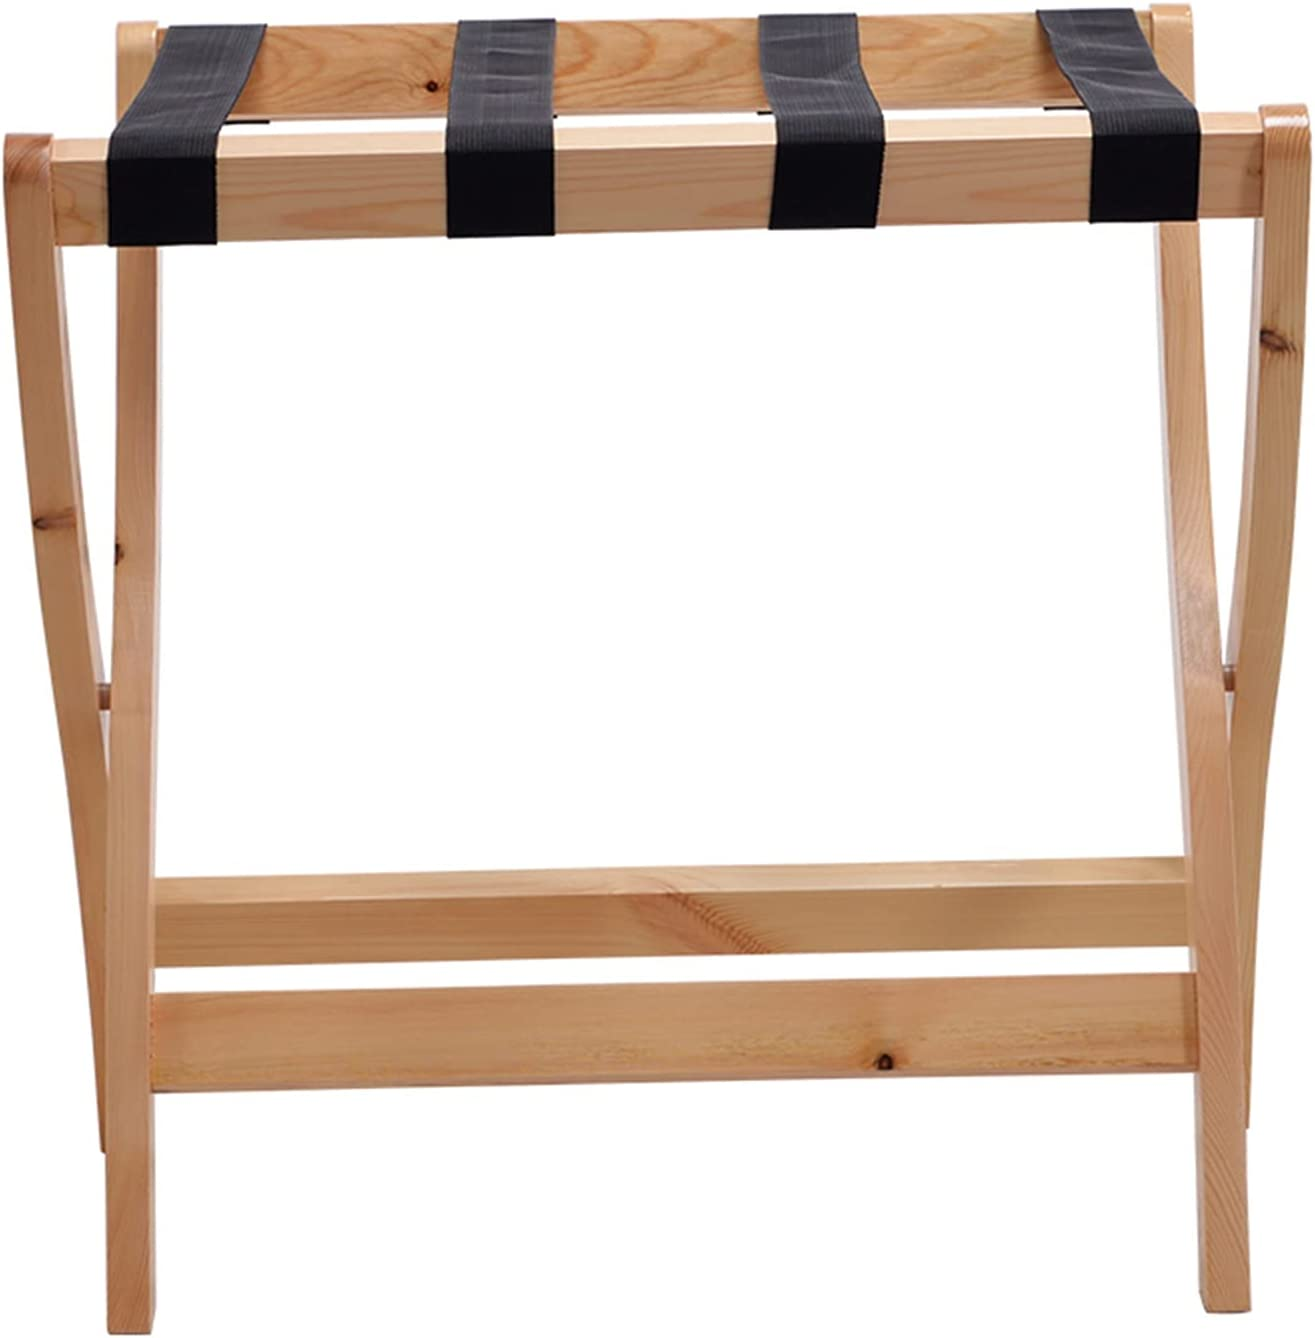 ZXFF Foldable Super sale period limited Wooden Luggage Rack with Webbing Nylon Los Angeles Mall Straps 4 S